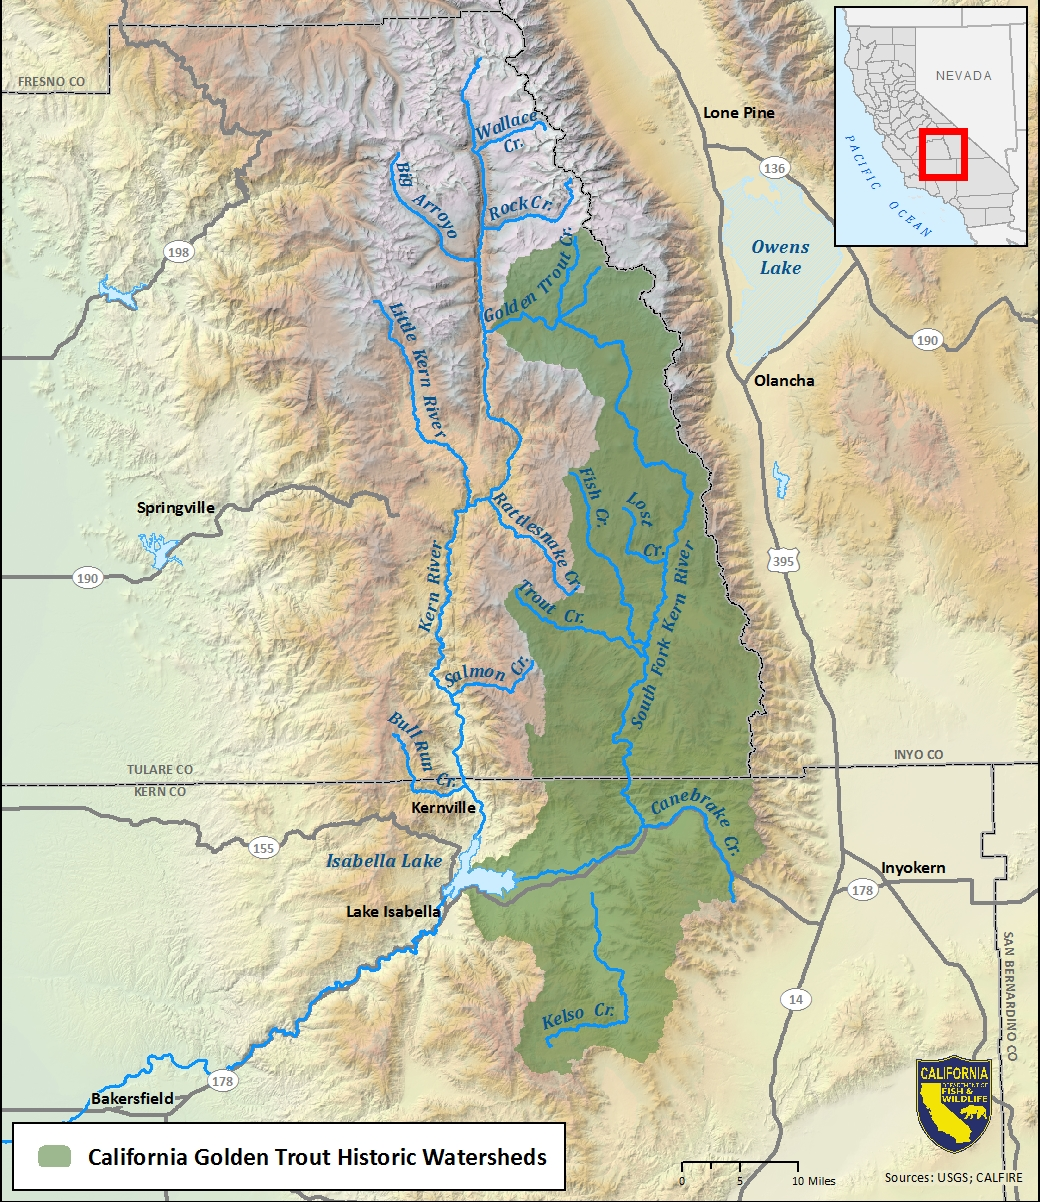 Map of California golden trout historic watersheds-link opens in new window